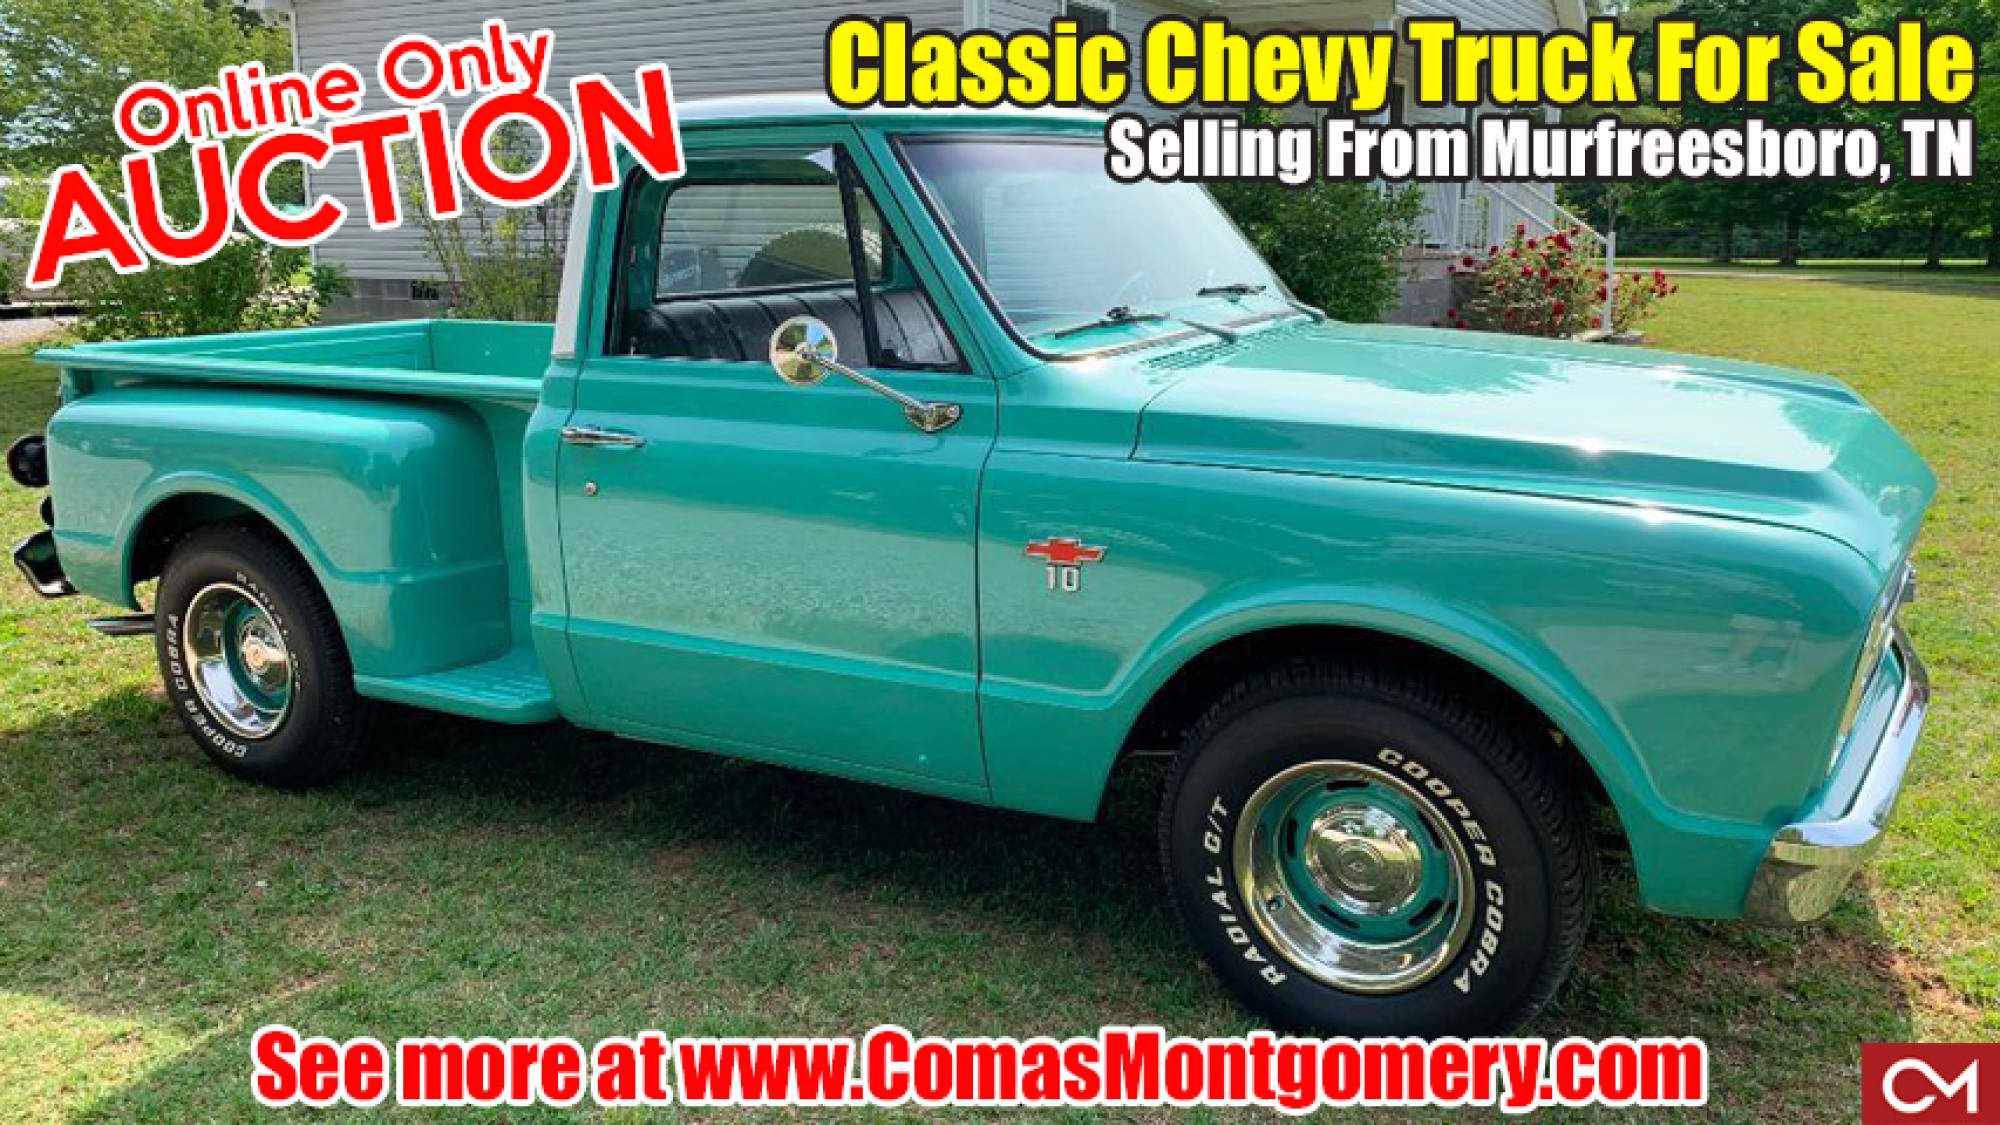 Chevy, Chevrolet, Truck, Automobile, Auto, Car, Auction, For Sale, Vehicle, Classic, Restored, 1967, C10, Murfreesboro, Tennessee, Comas, Montgomery